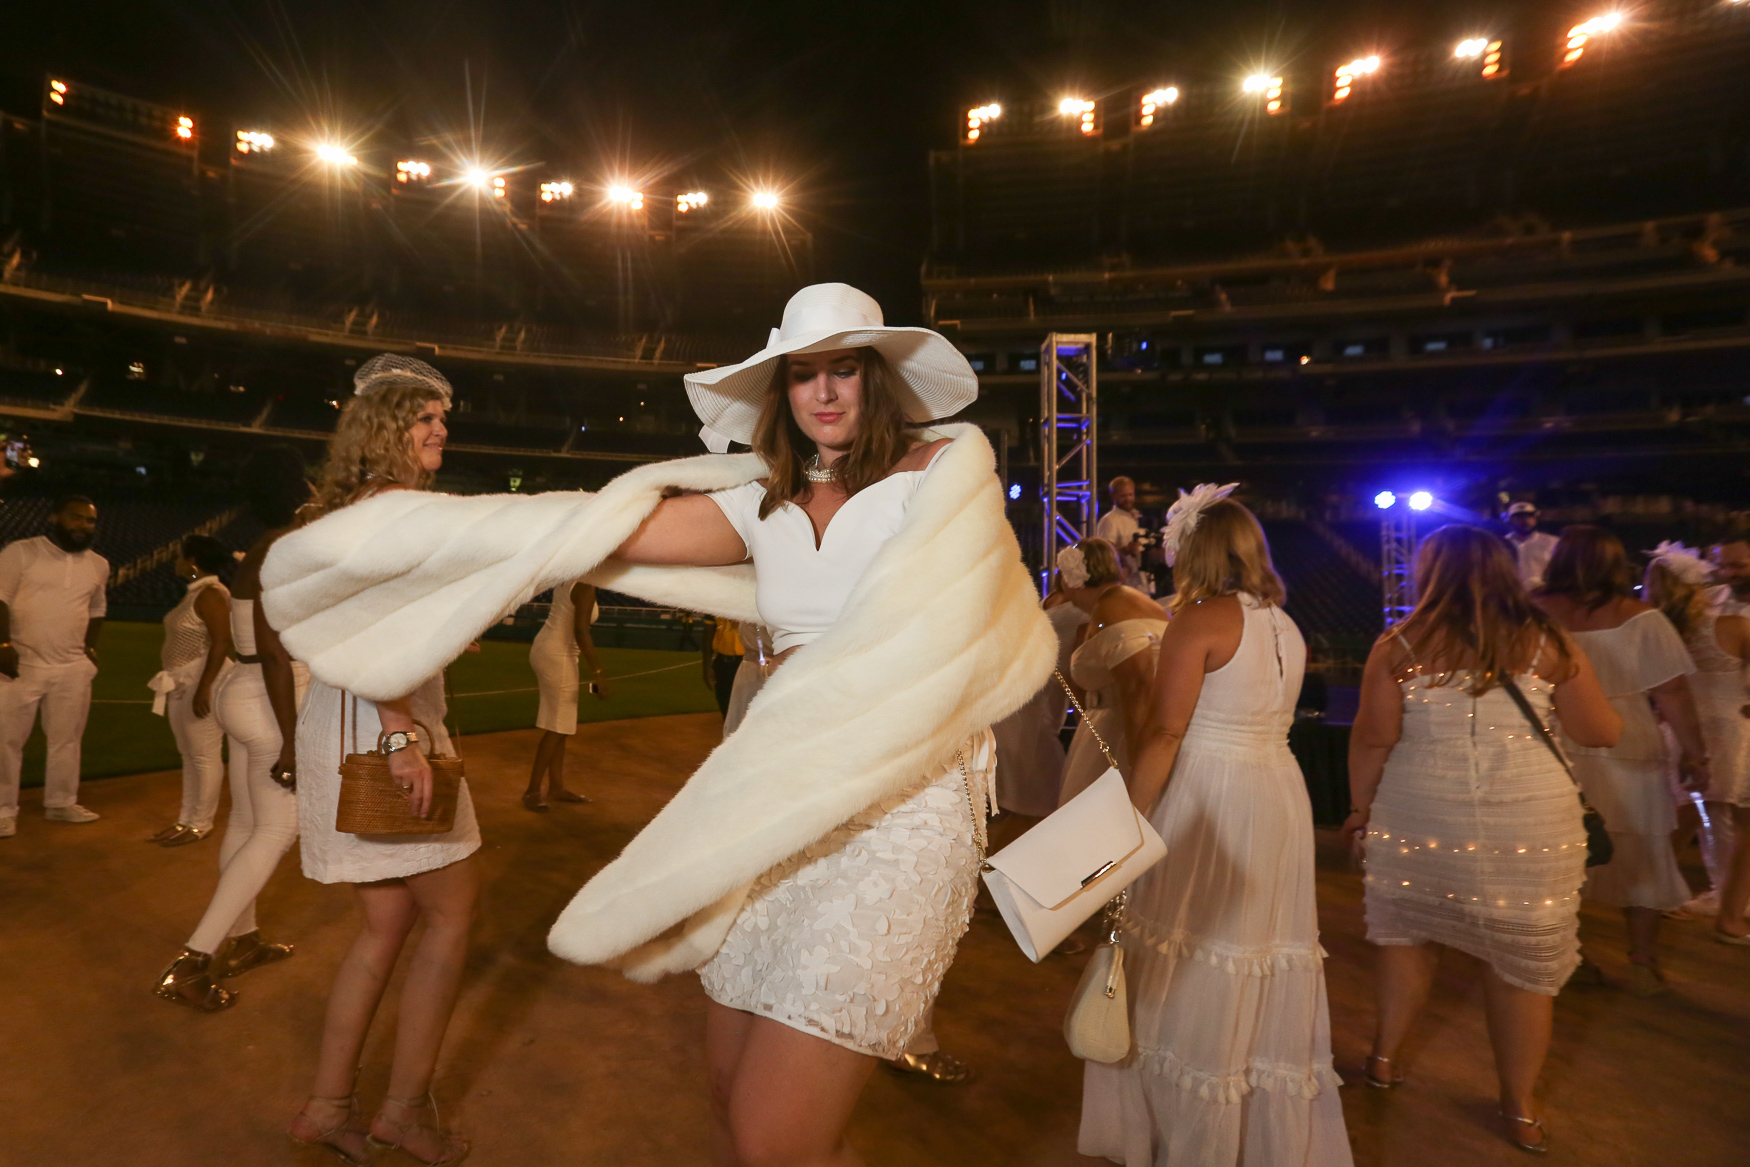 On August 25, 5,000 people donned their fanciest white garb and carried their tables, decorations and food to Nats Park for Dîner en Blanc, a spectacular pop-up picnic. Although attendees only learn of the location about an hour before the dinner starts, they go all out with spectacular tablescapes and delicious food. The event typically includes a napkin spinning ceremony and sparklers, although this year, attendees used electronic sparklers to preserve Nats Park. The evening concluded with dancing on the baseball diamond. (Amanda Andrade-Rhoades/DC Refined)